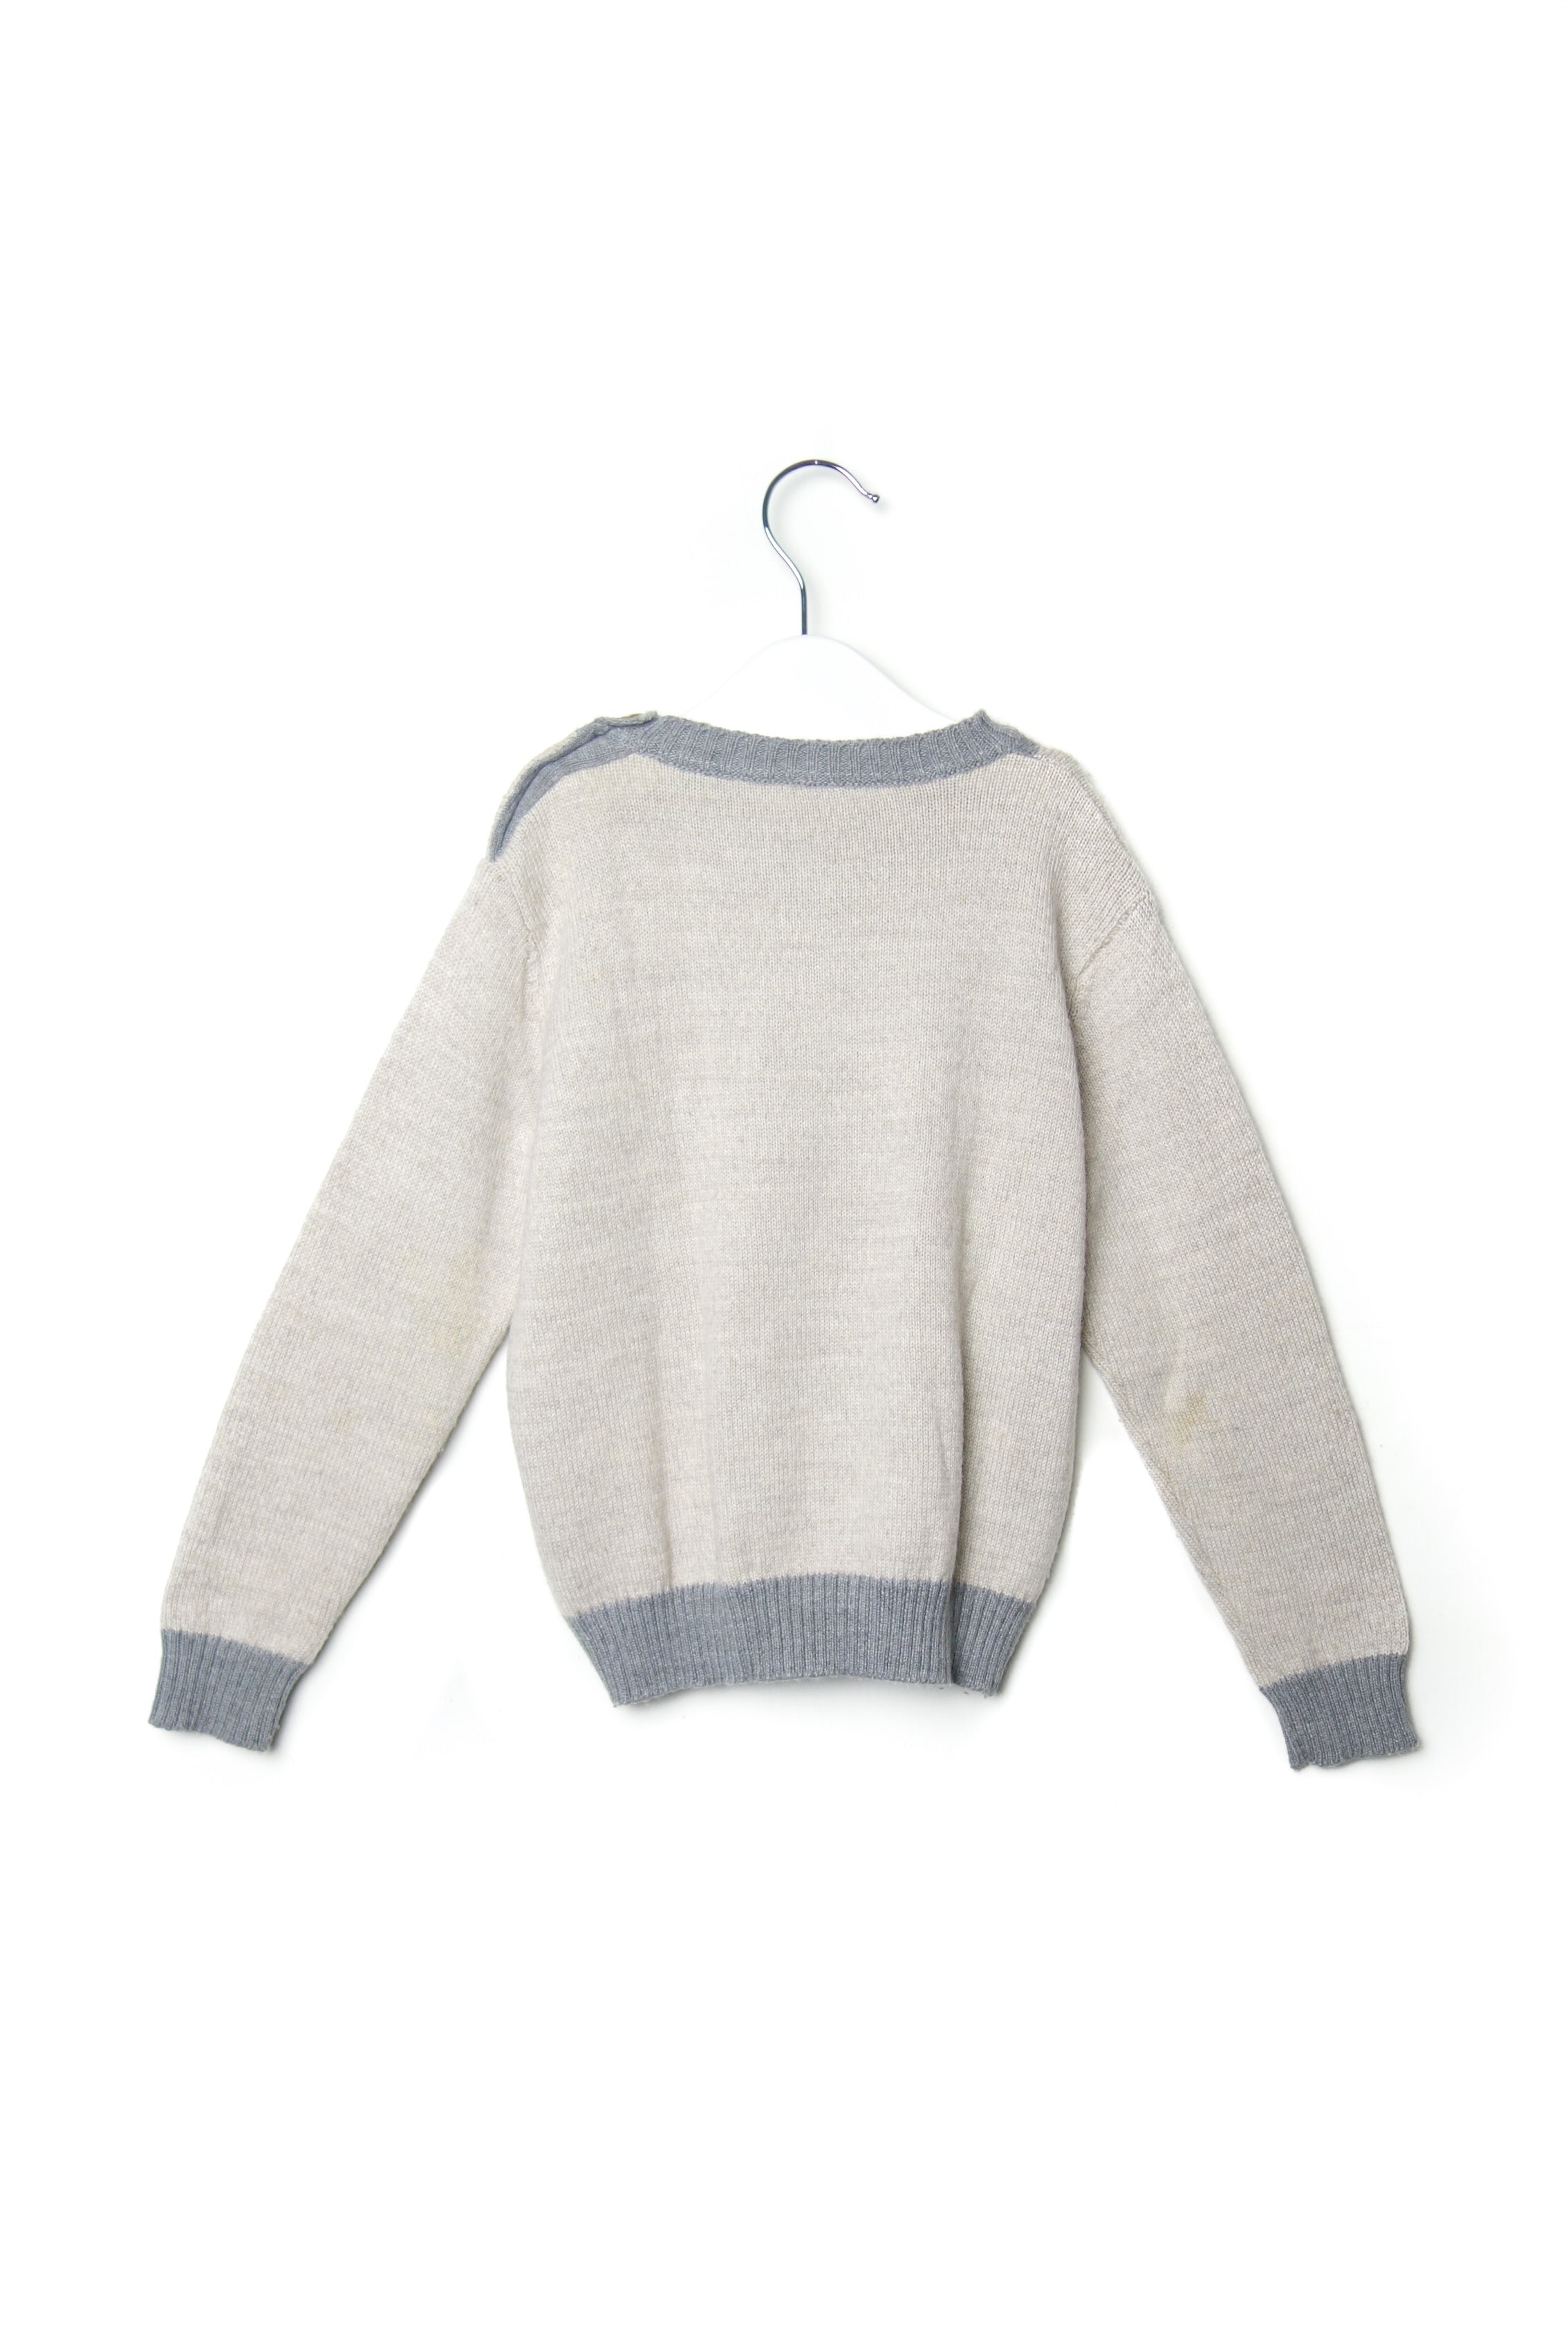 10001846~Sweater 2T at Retykle